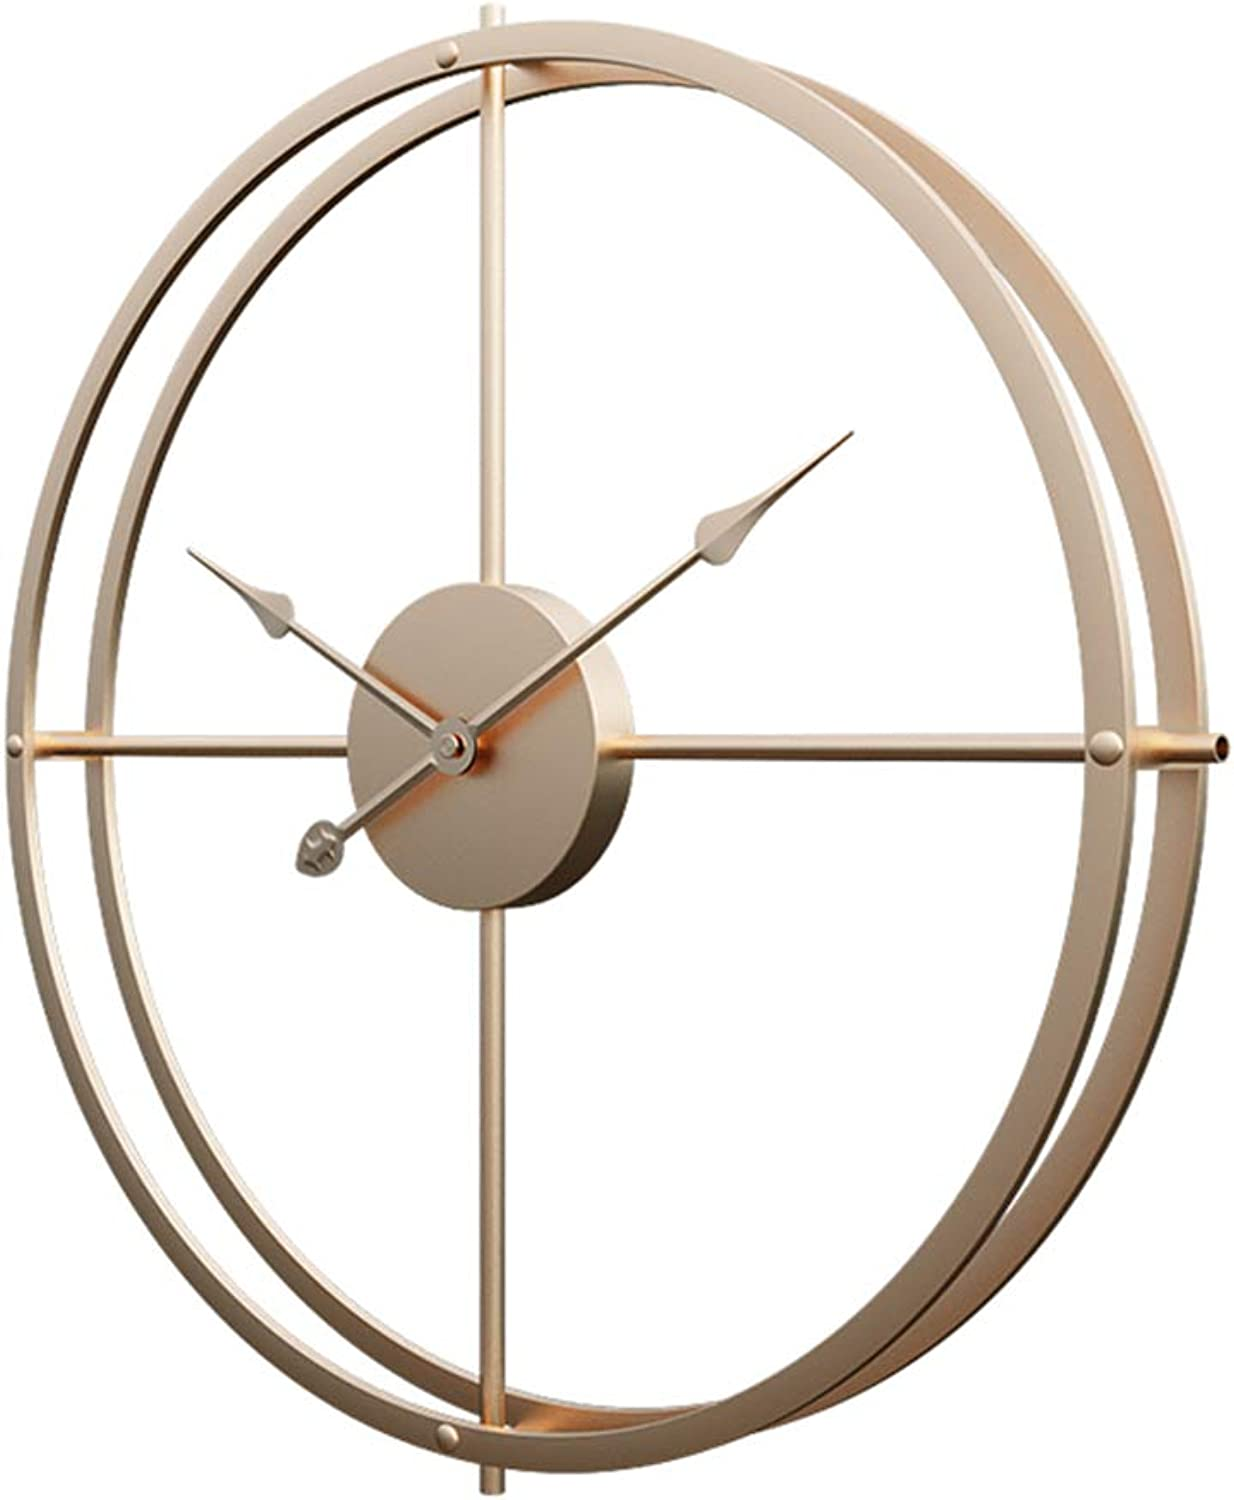 RuiyiF 16 Inch Silent Wall Clock Non Ticking, Metal Vintage Unique Wall Clocks Large Decorative for Kitchen Living Room Office (gold, 16 Inch)